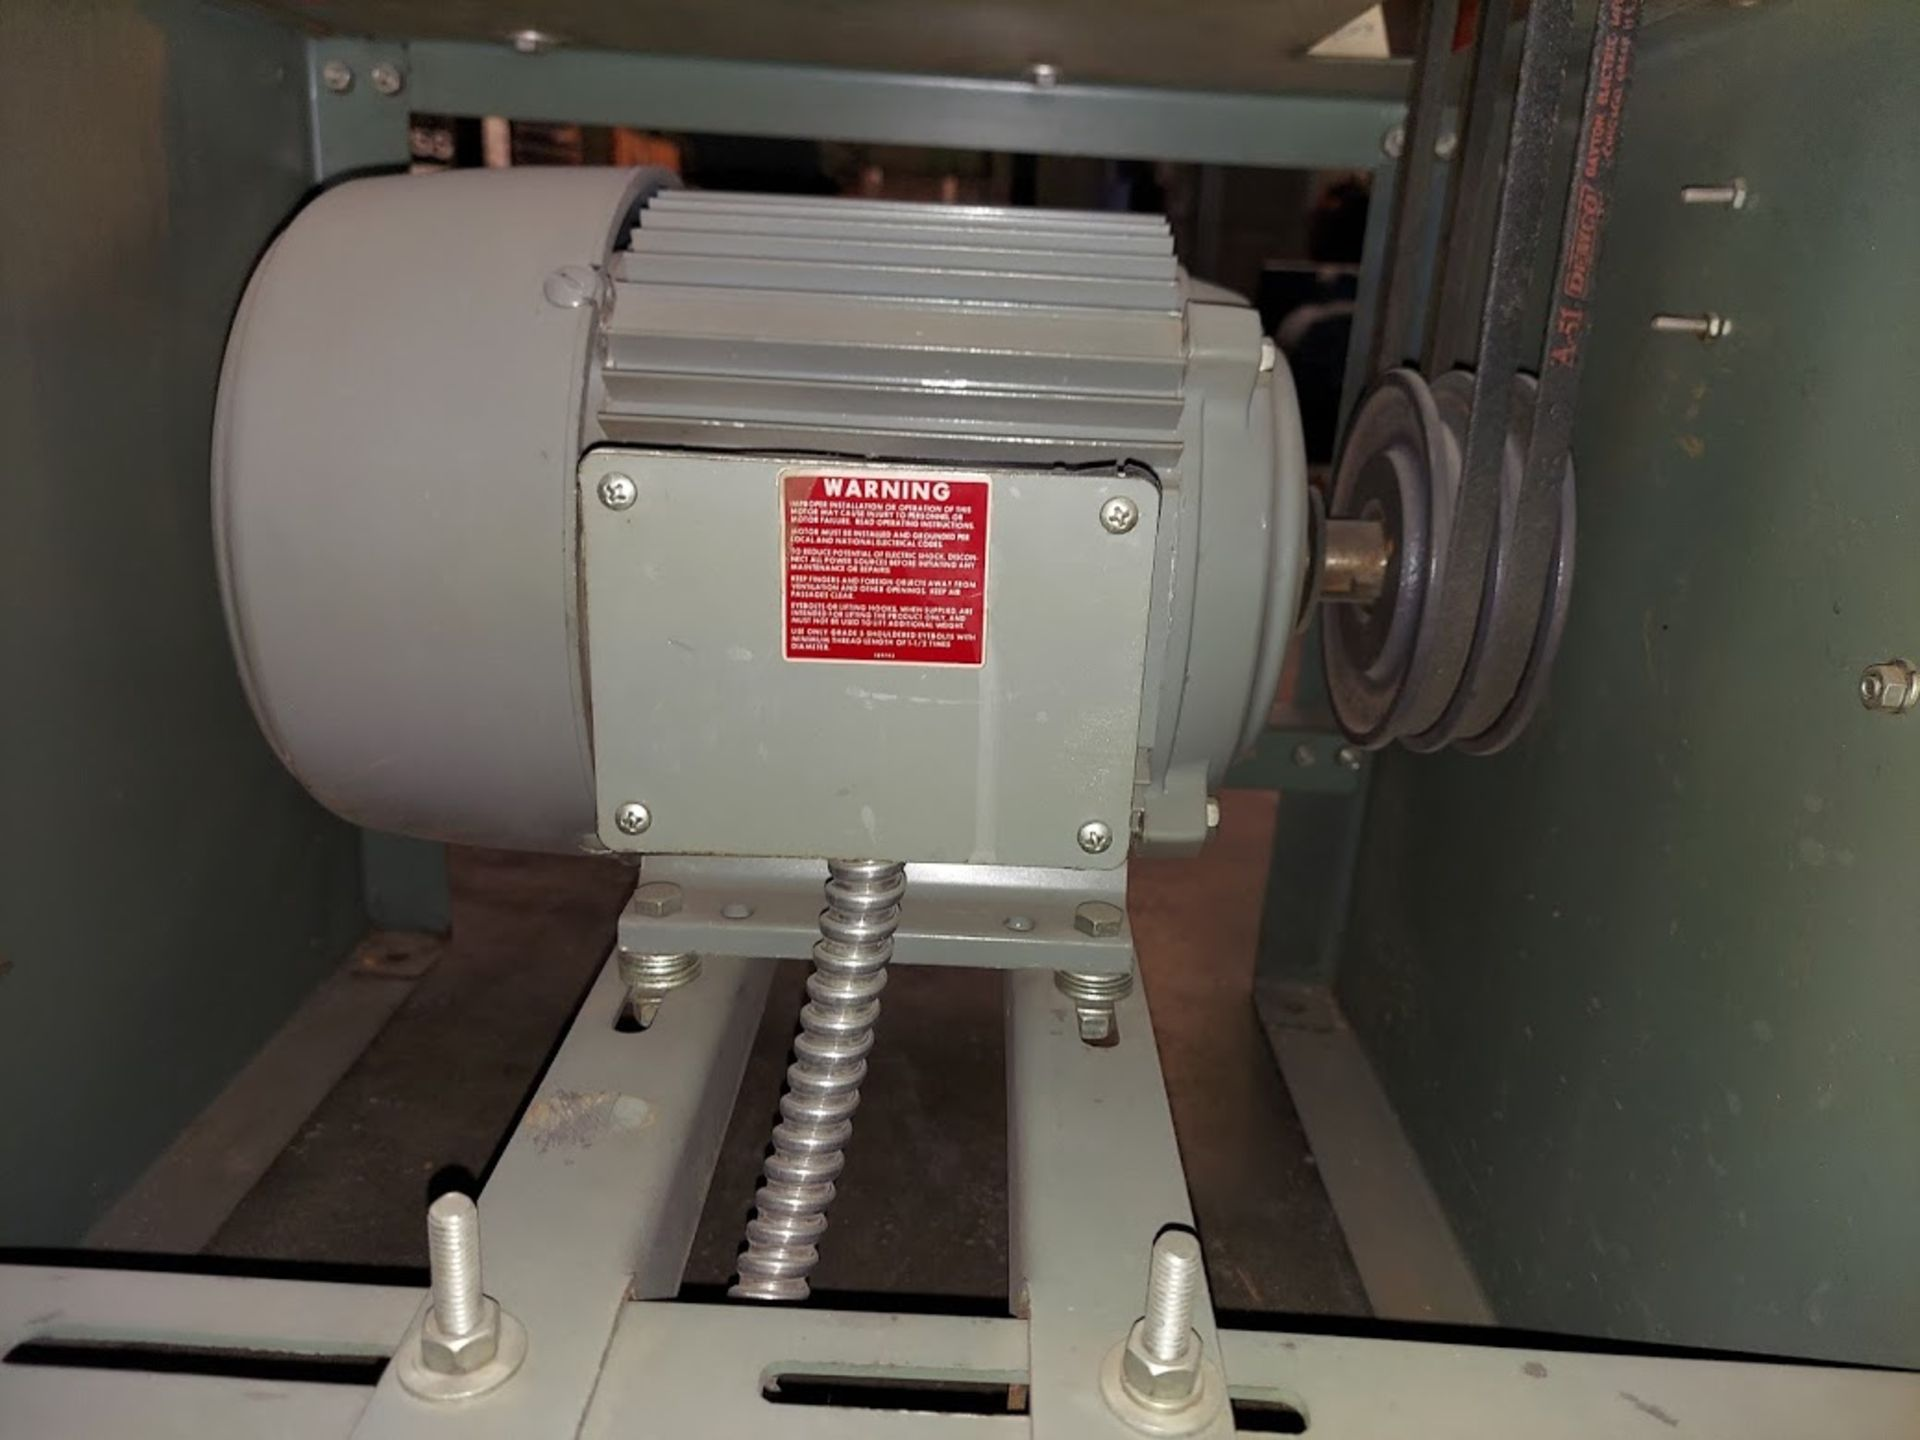 Foley Belsaw Molder Planer, 220 Volts 3 Phase Motor, Model # 9123 - Image 3 of 4